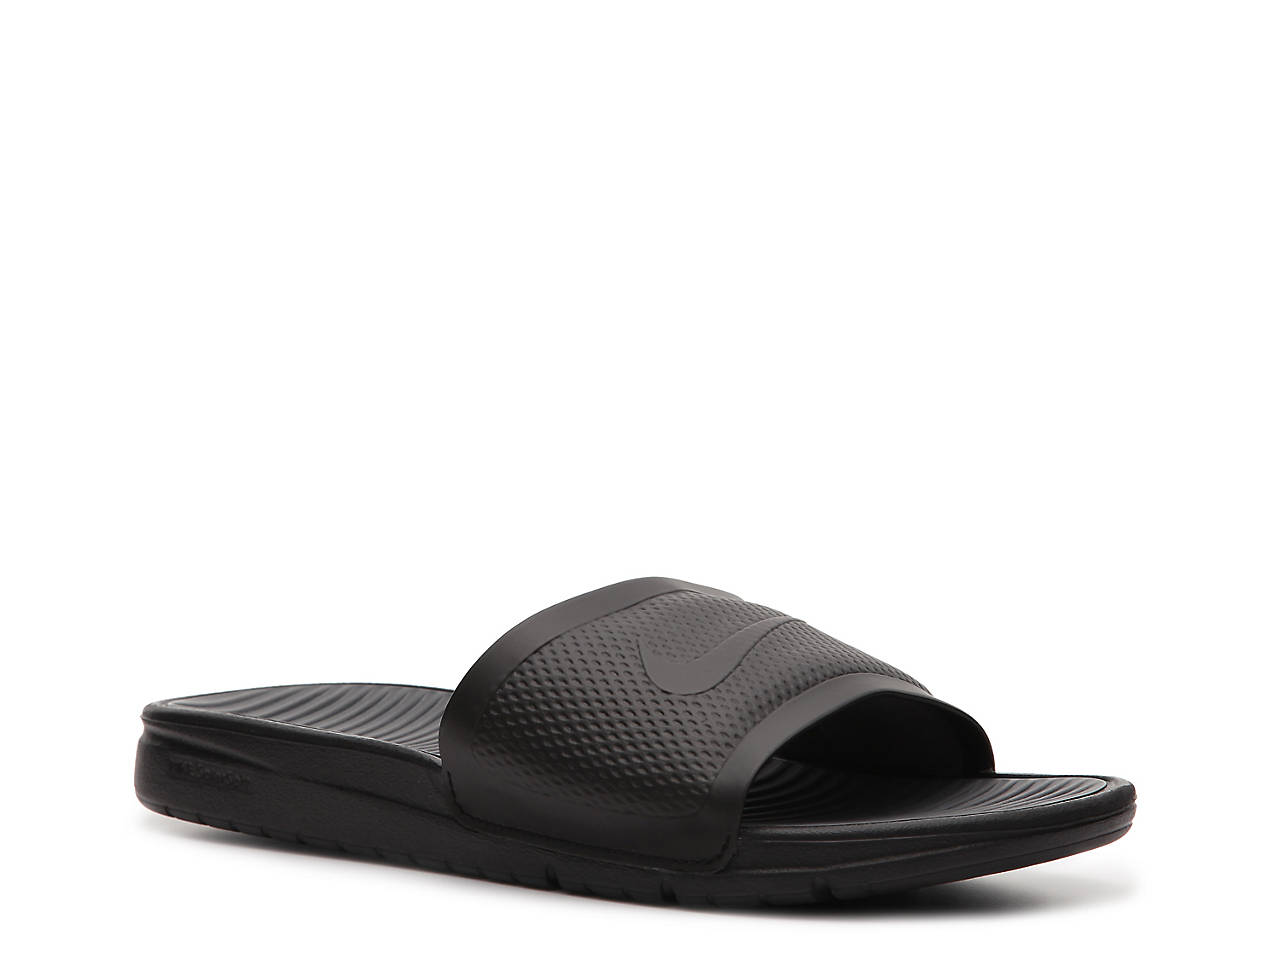 31af06e904b1e Nike Benassi Solarsoft Slide Sandal - Men s Men s Shoes